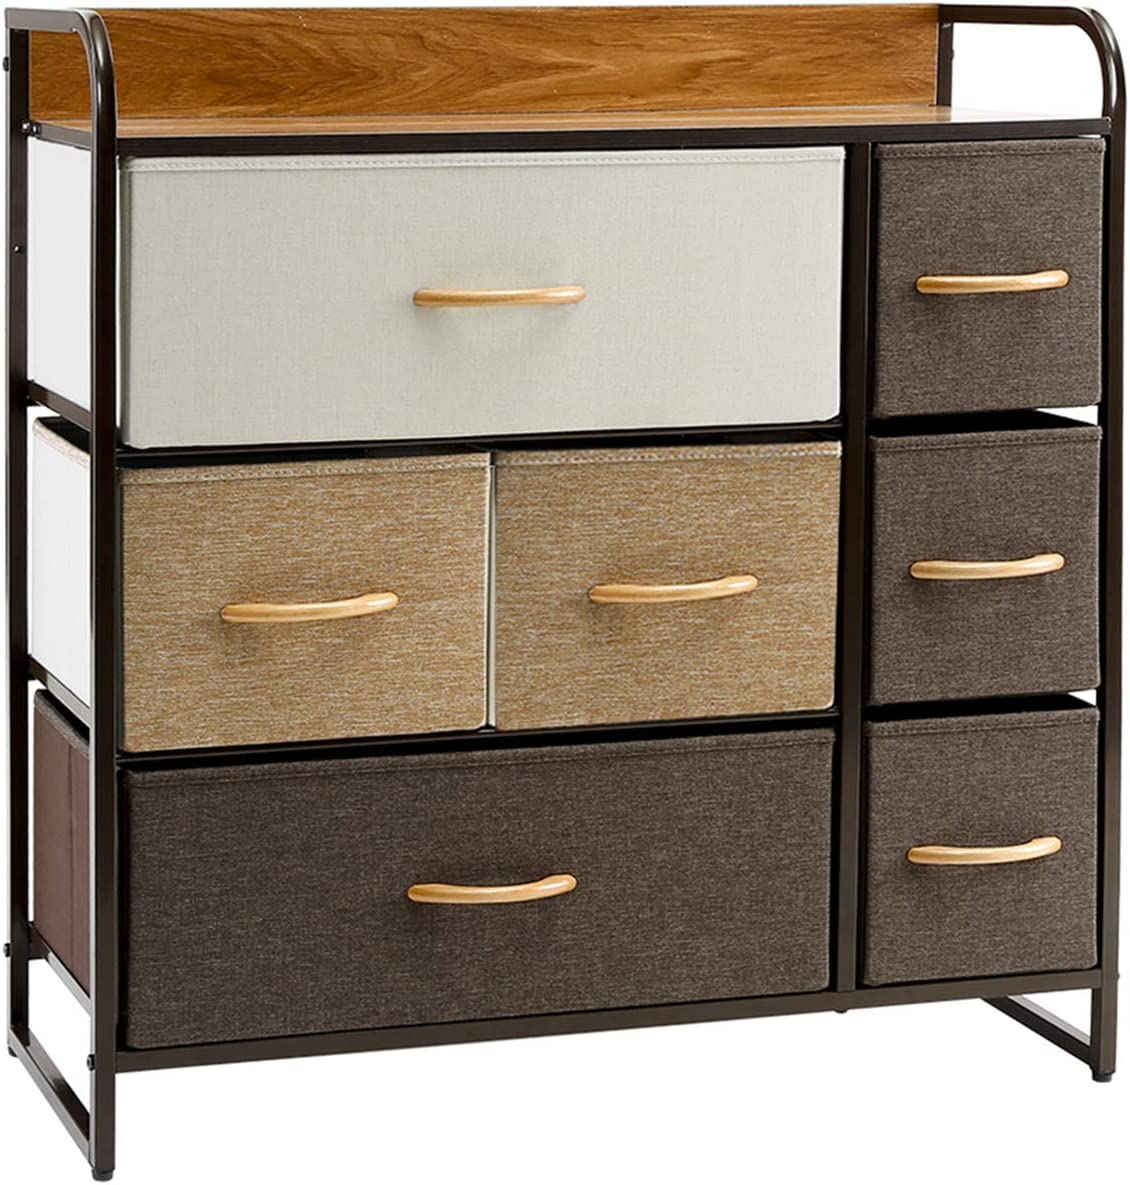 1. Kamiler 3 Tiers, Tower 7 Drawer Dresser.